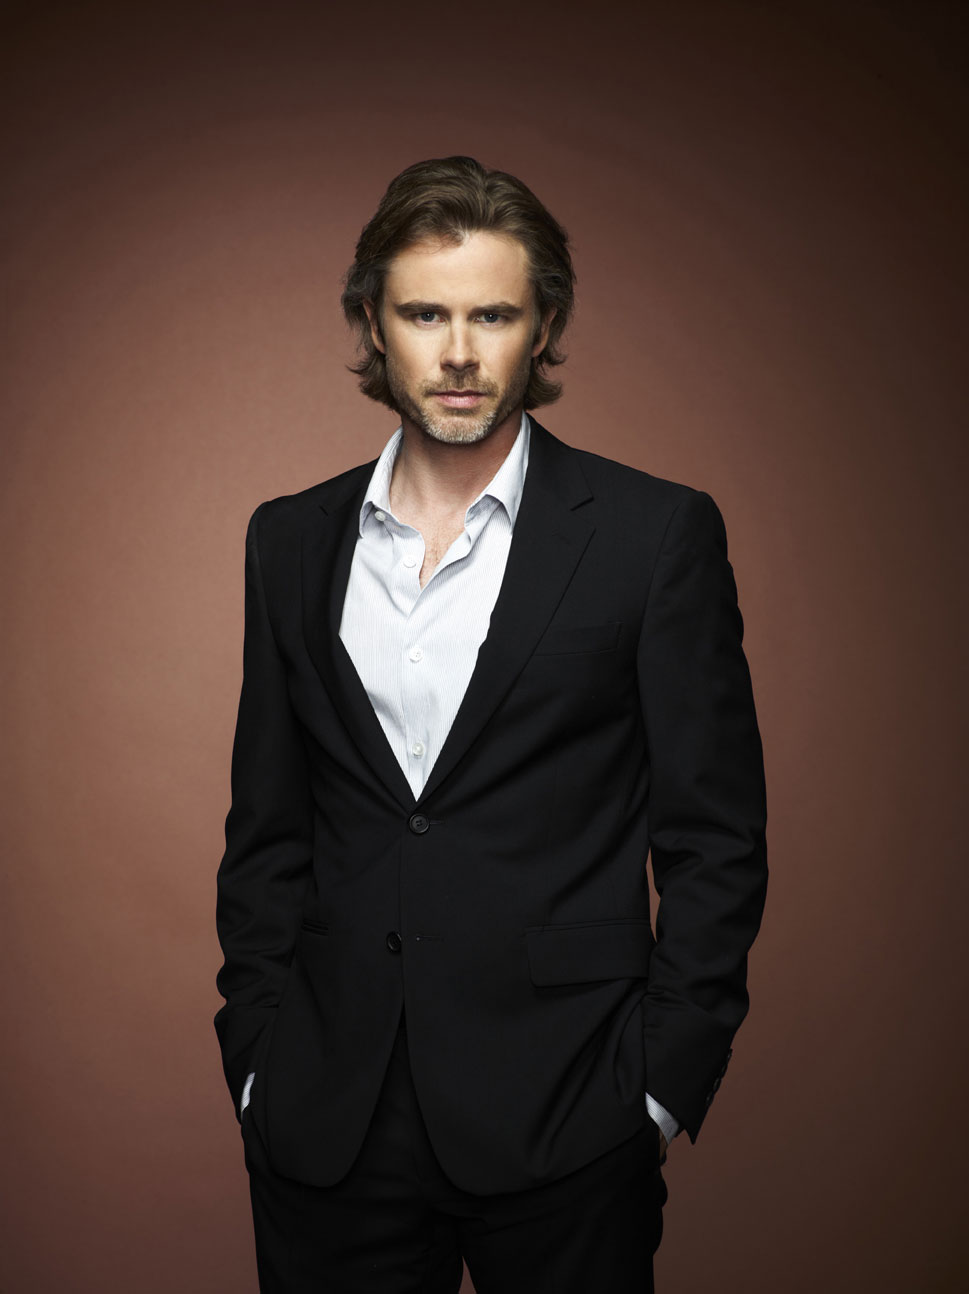 sam trammell moviessam trammell height, sam trammell instagram, sam trammell, sam trammell the fault in our stars, sam trammell imdb, sam trammell wife, sam trammell net worth, sam trammell dexter, sam trammell facebook, sam trammell twins, sam trammell twitter, sam trammell missy yager, sam trammell gay, sam trammell jason lee, sam trammell interview, sam trammell movies, sam trammell cocked